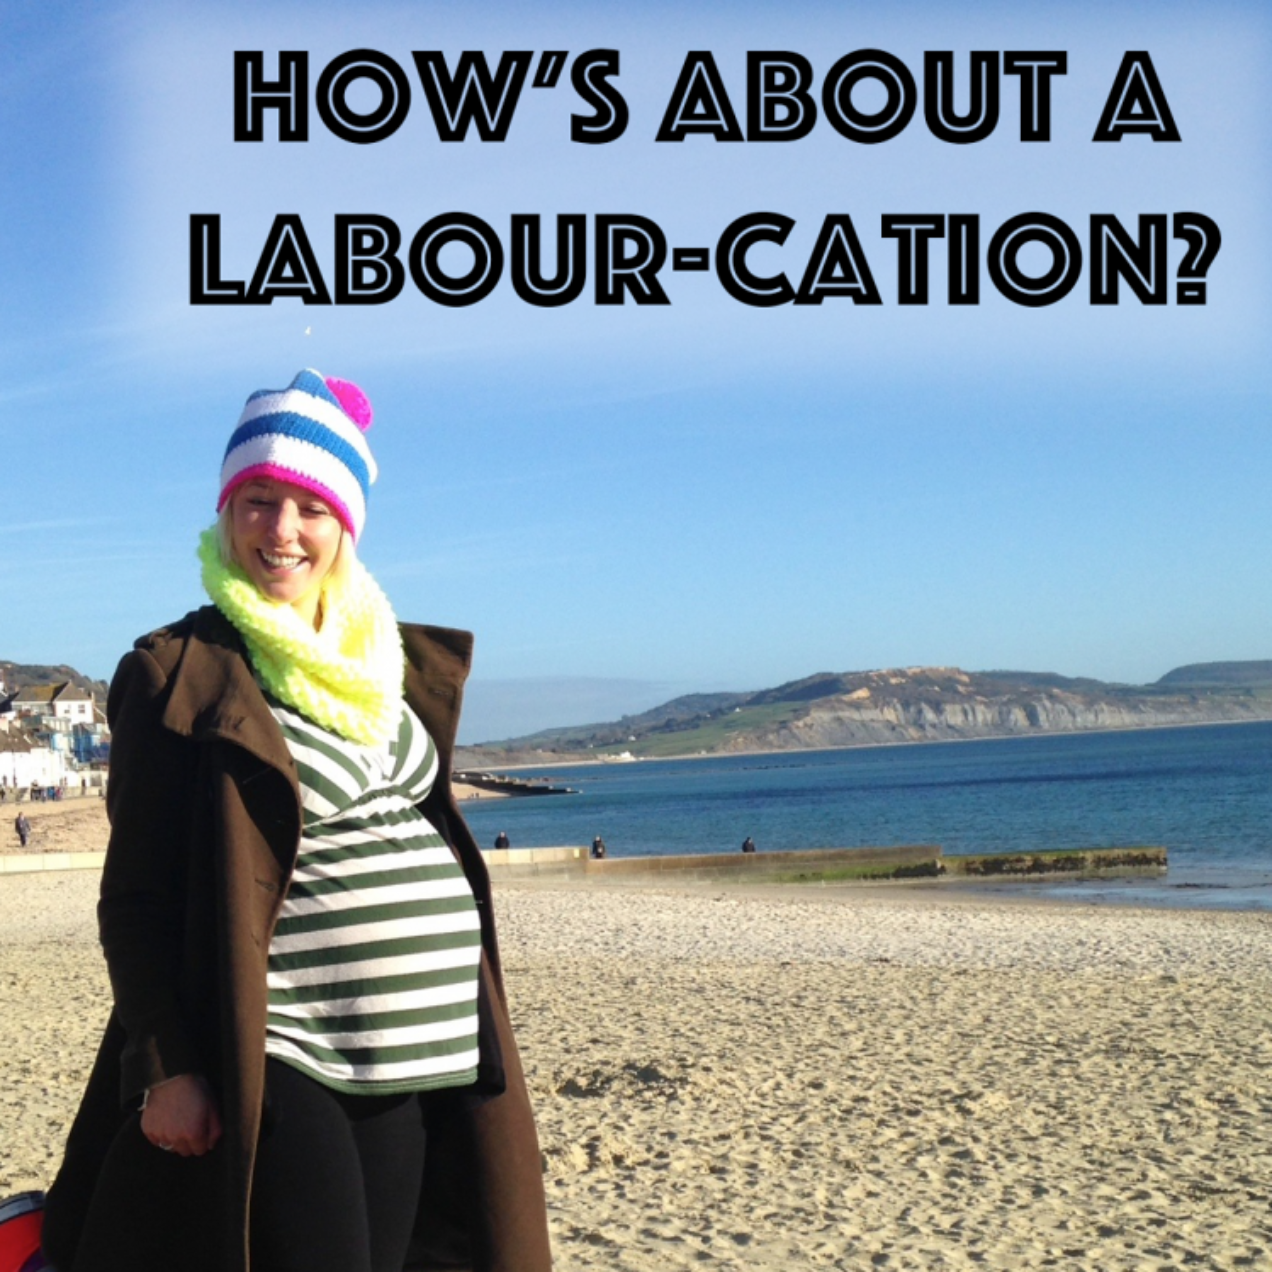 Last-second mum-to-be mini break: the Labour-cation!